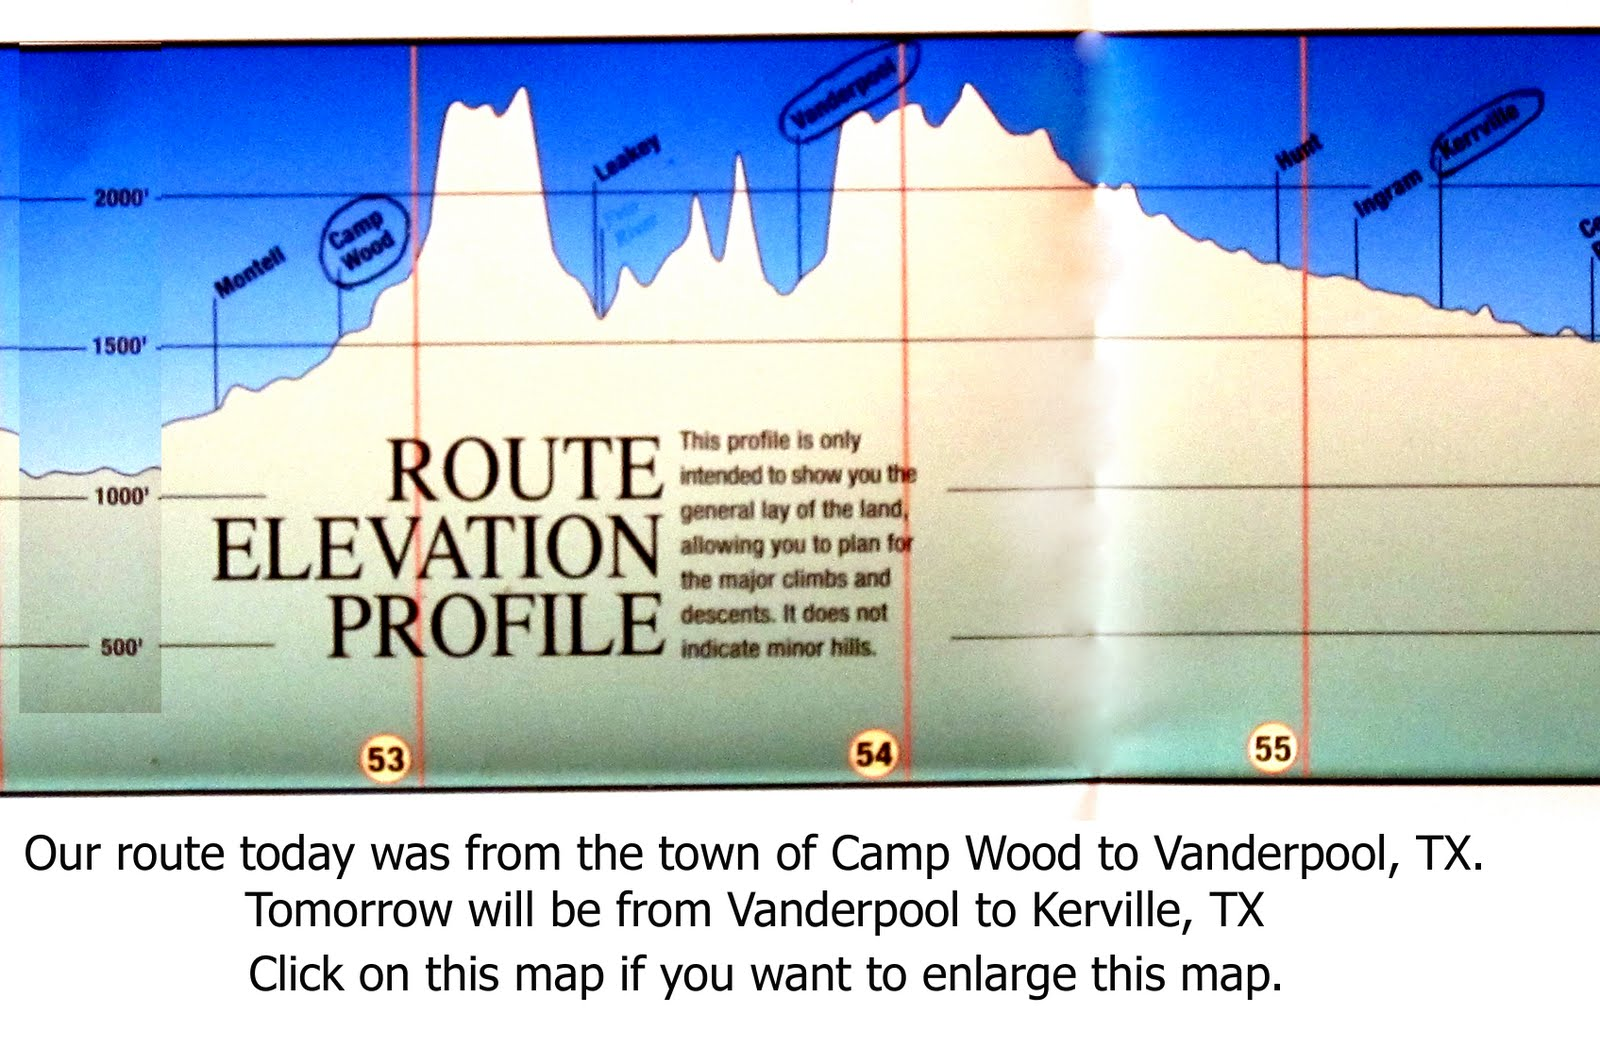 Camp Wood Az Elevation : Rita s bicycling camp wood tx to fox fire cabins